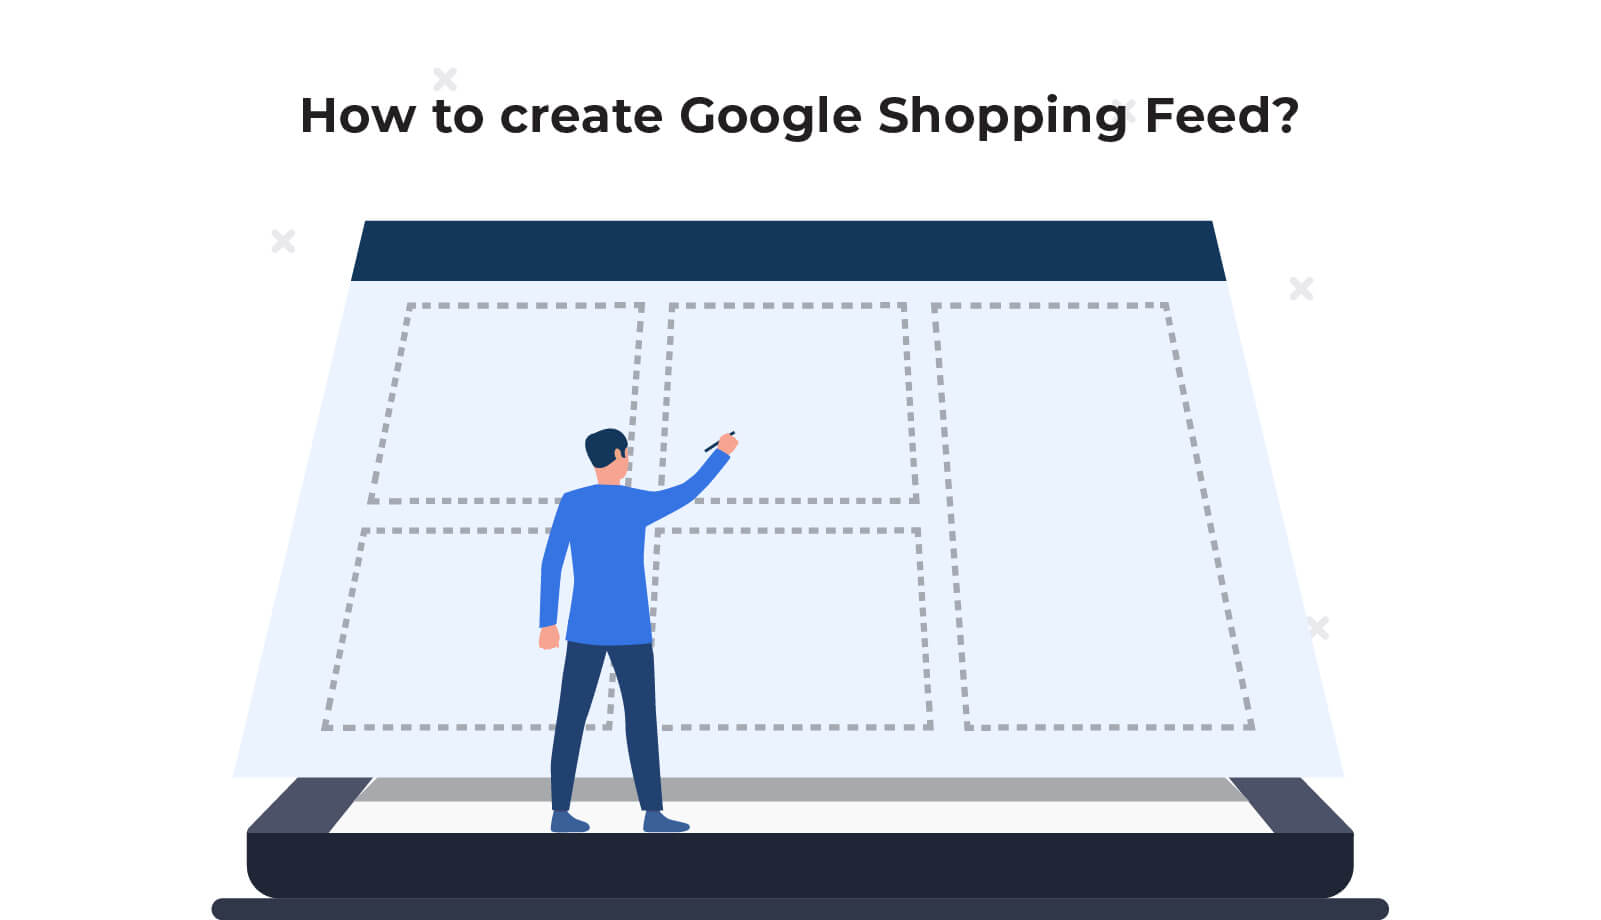 How to create Google Shopping Feed